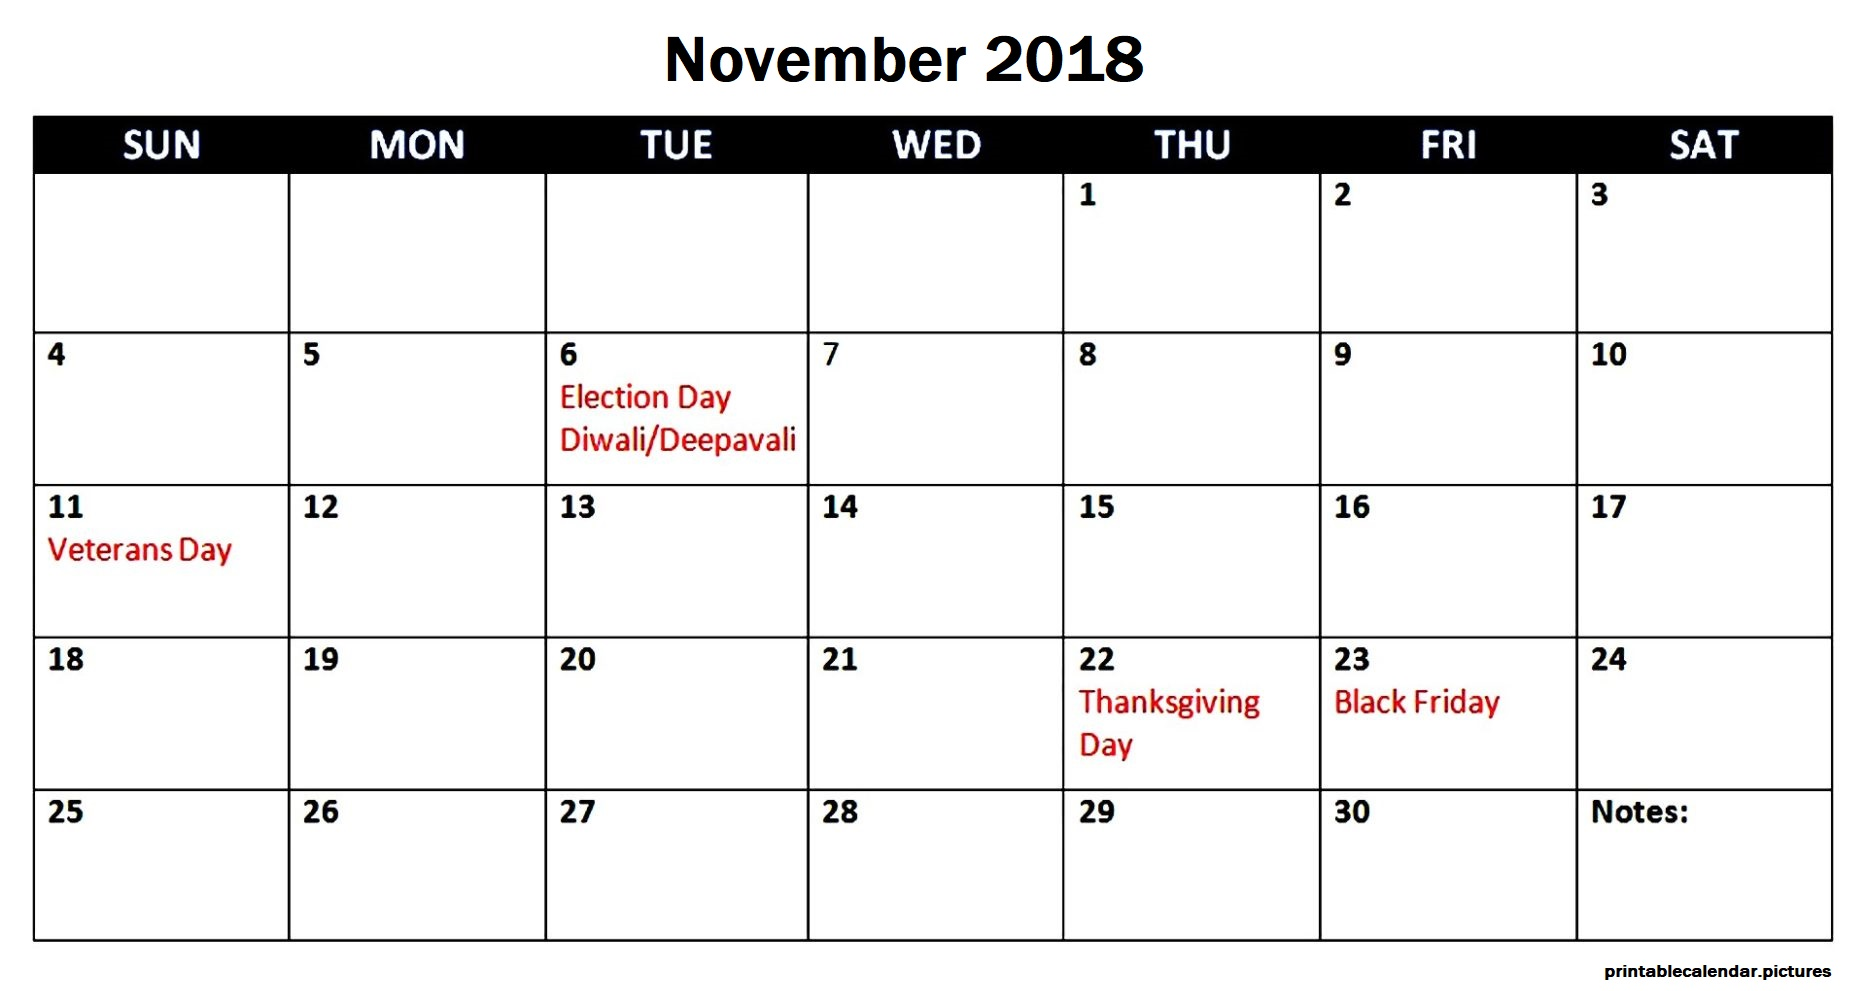 November 2018 Calendar With Federal Holidays Canada